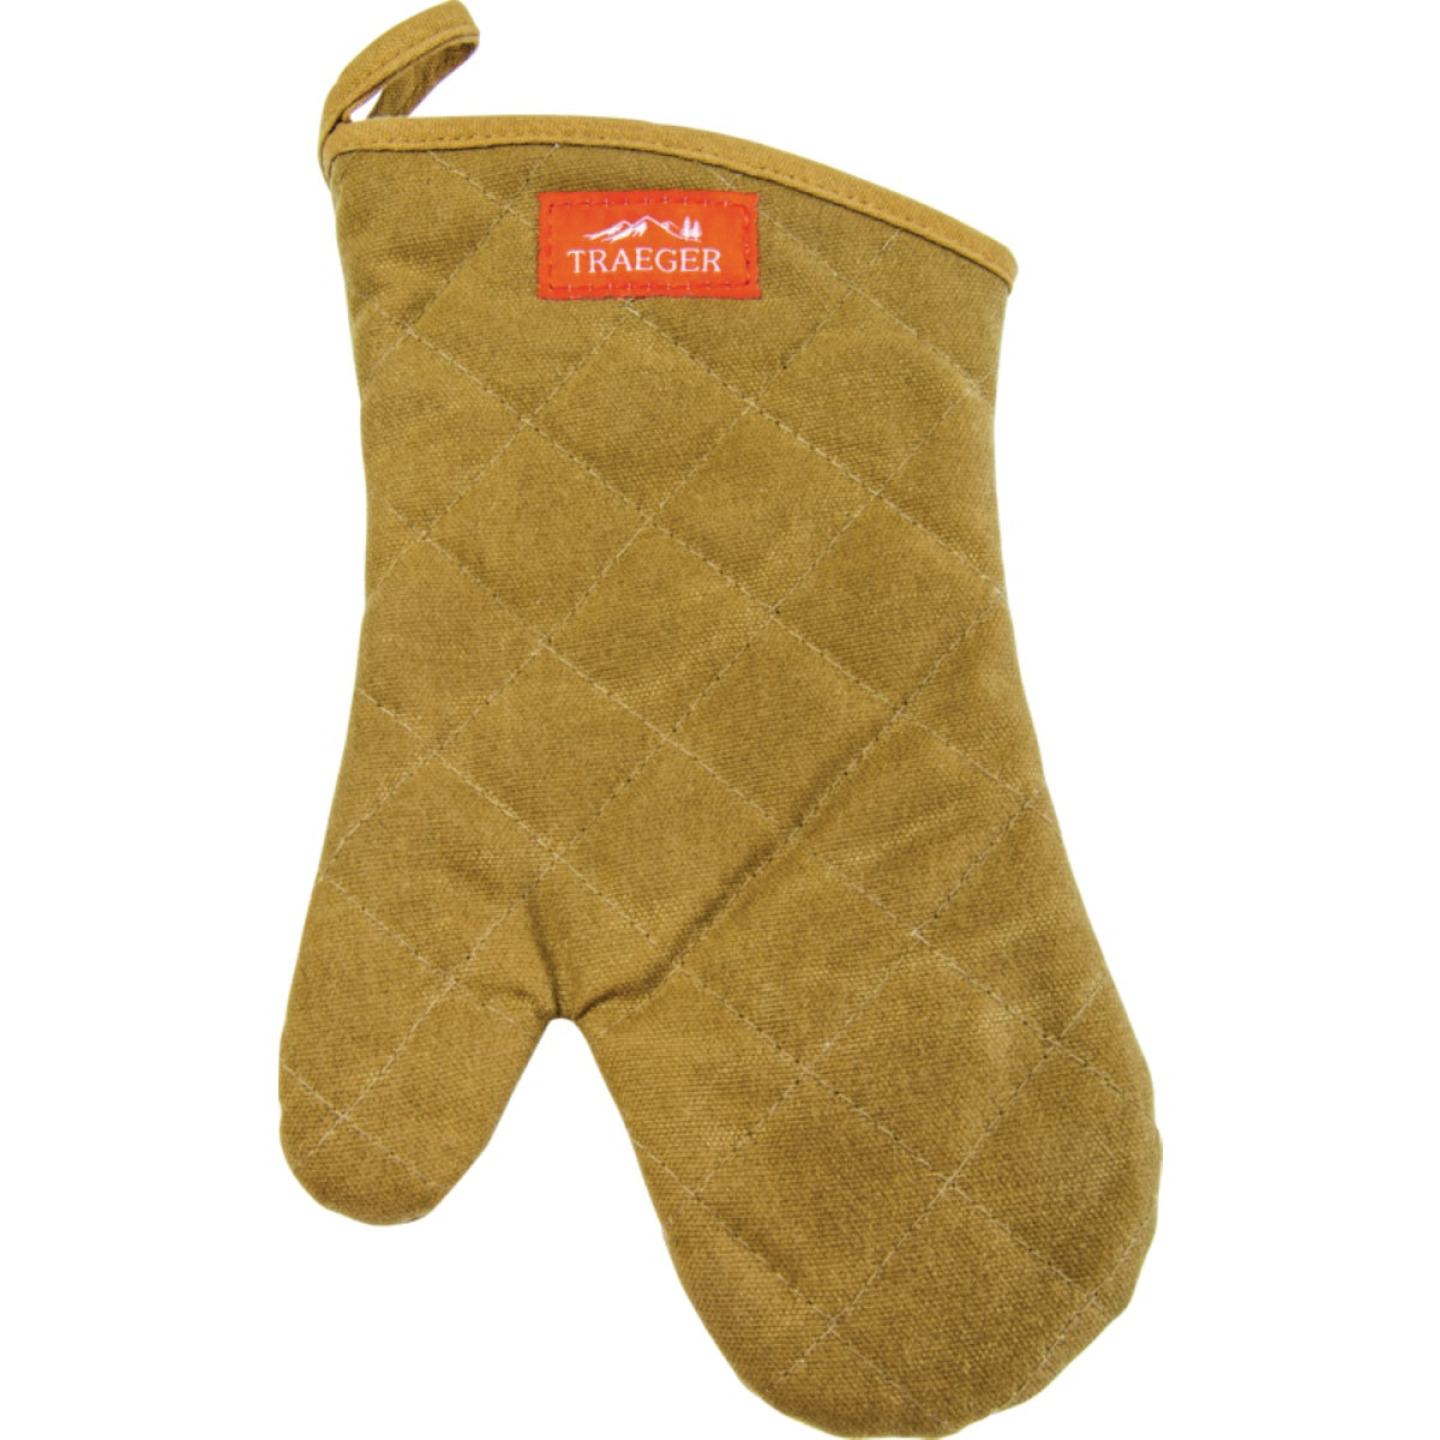 Traeger Brown Canvas Barbeque Mitt Image 1